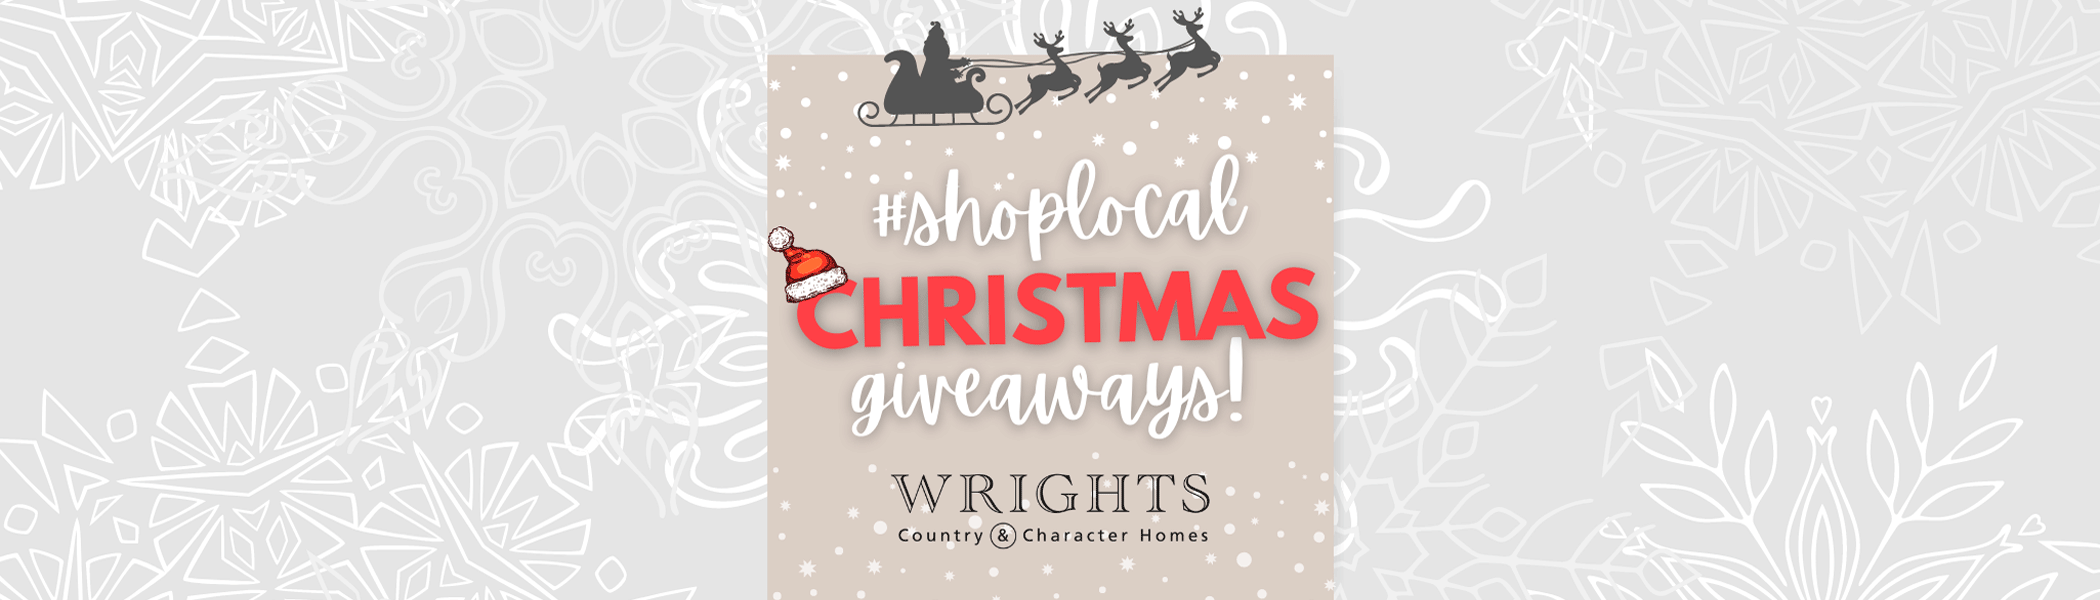 Wrights 12 days of Christmas Giveaway